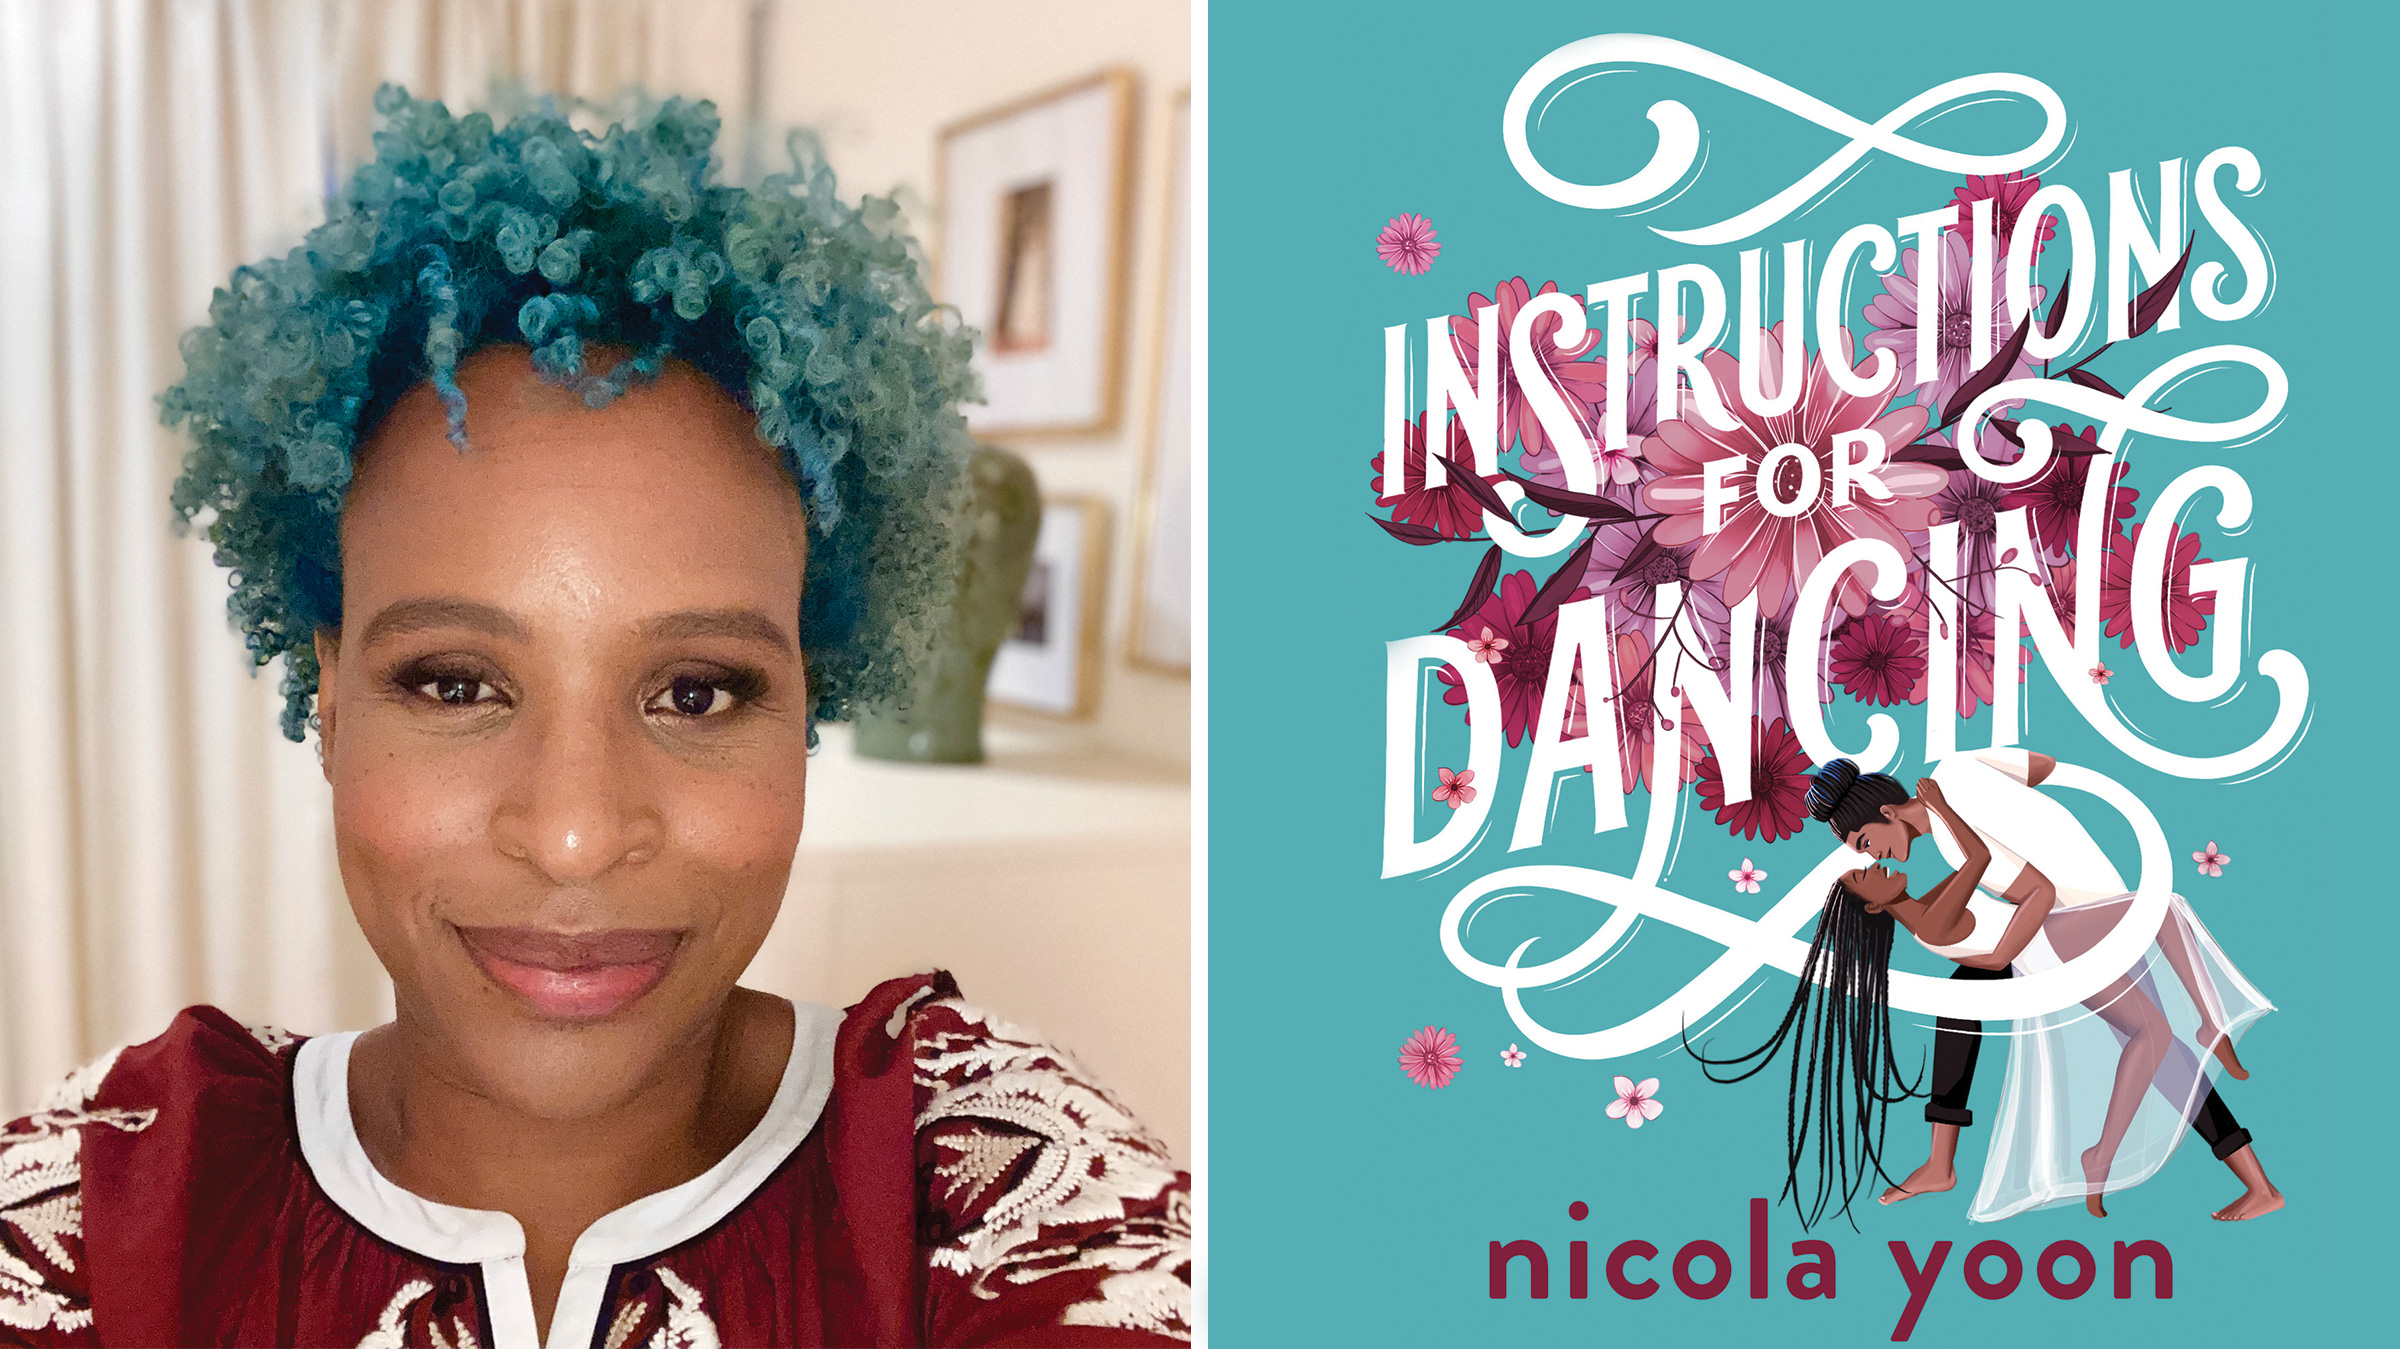 Bestselling author Nicola Yoon (left) and her new novel  Instructions for Dancing.